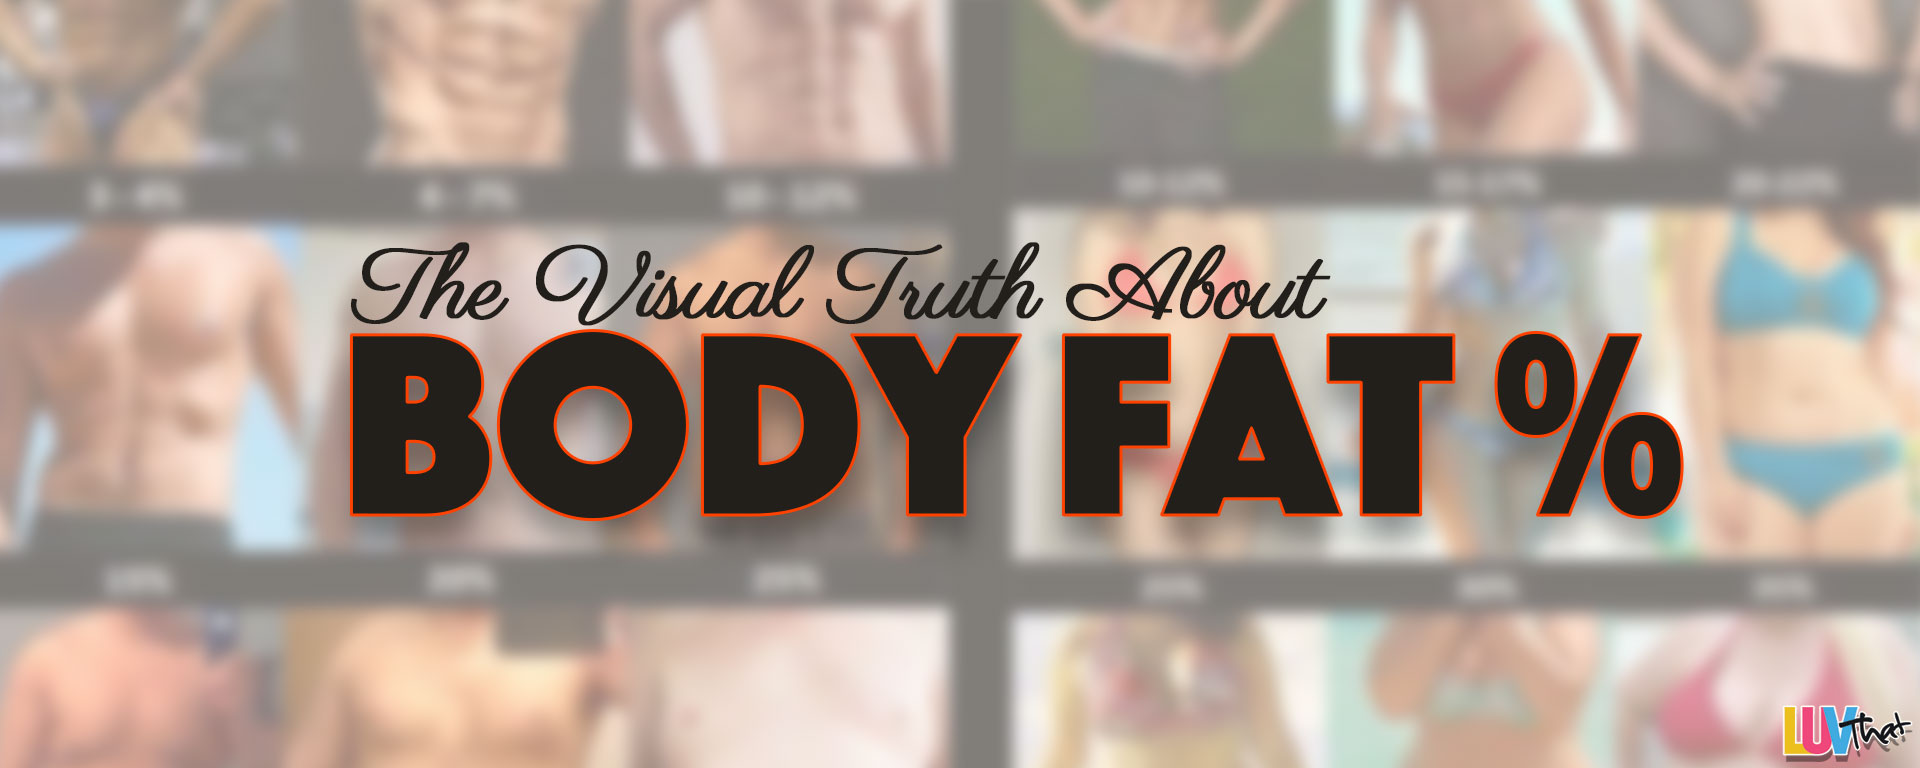 featured body fat visual truth